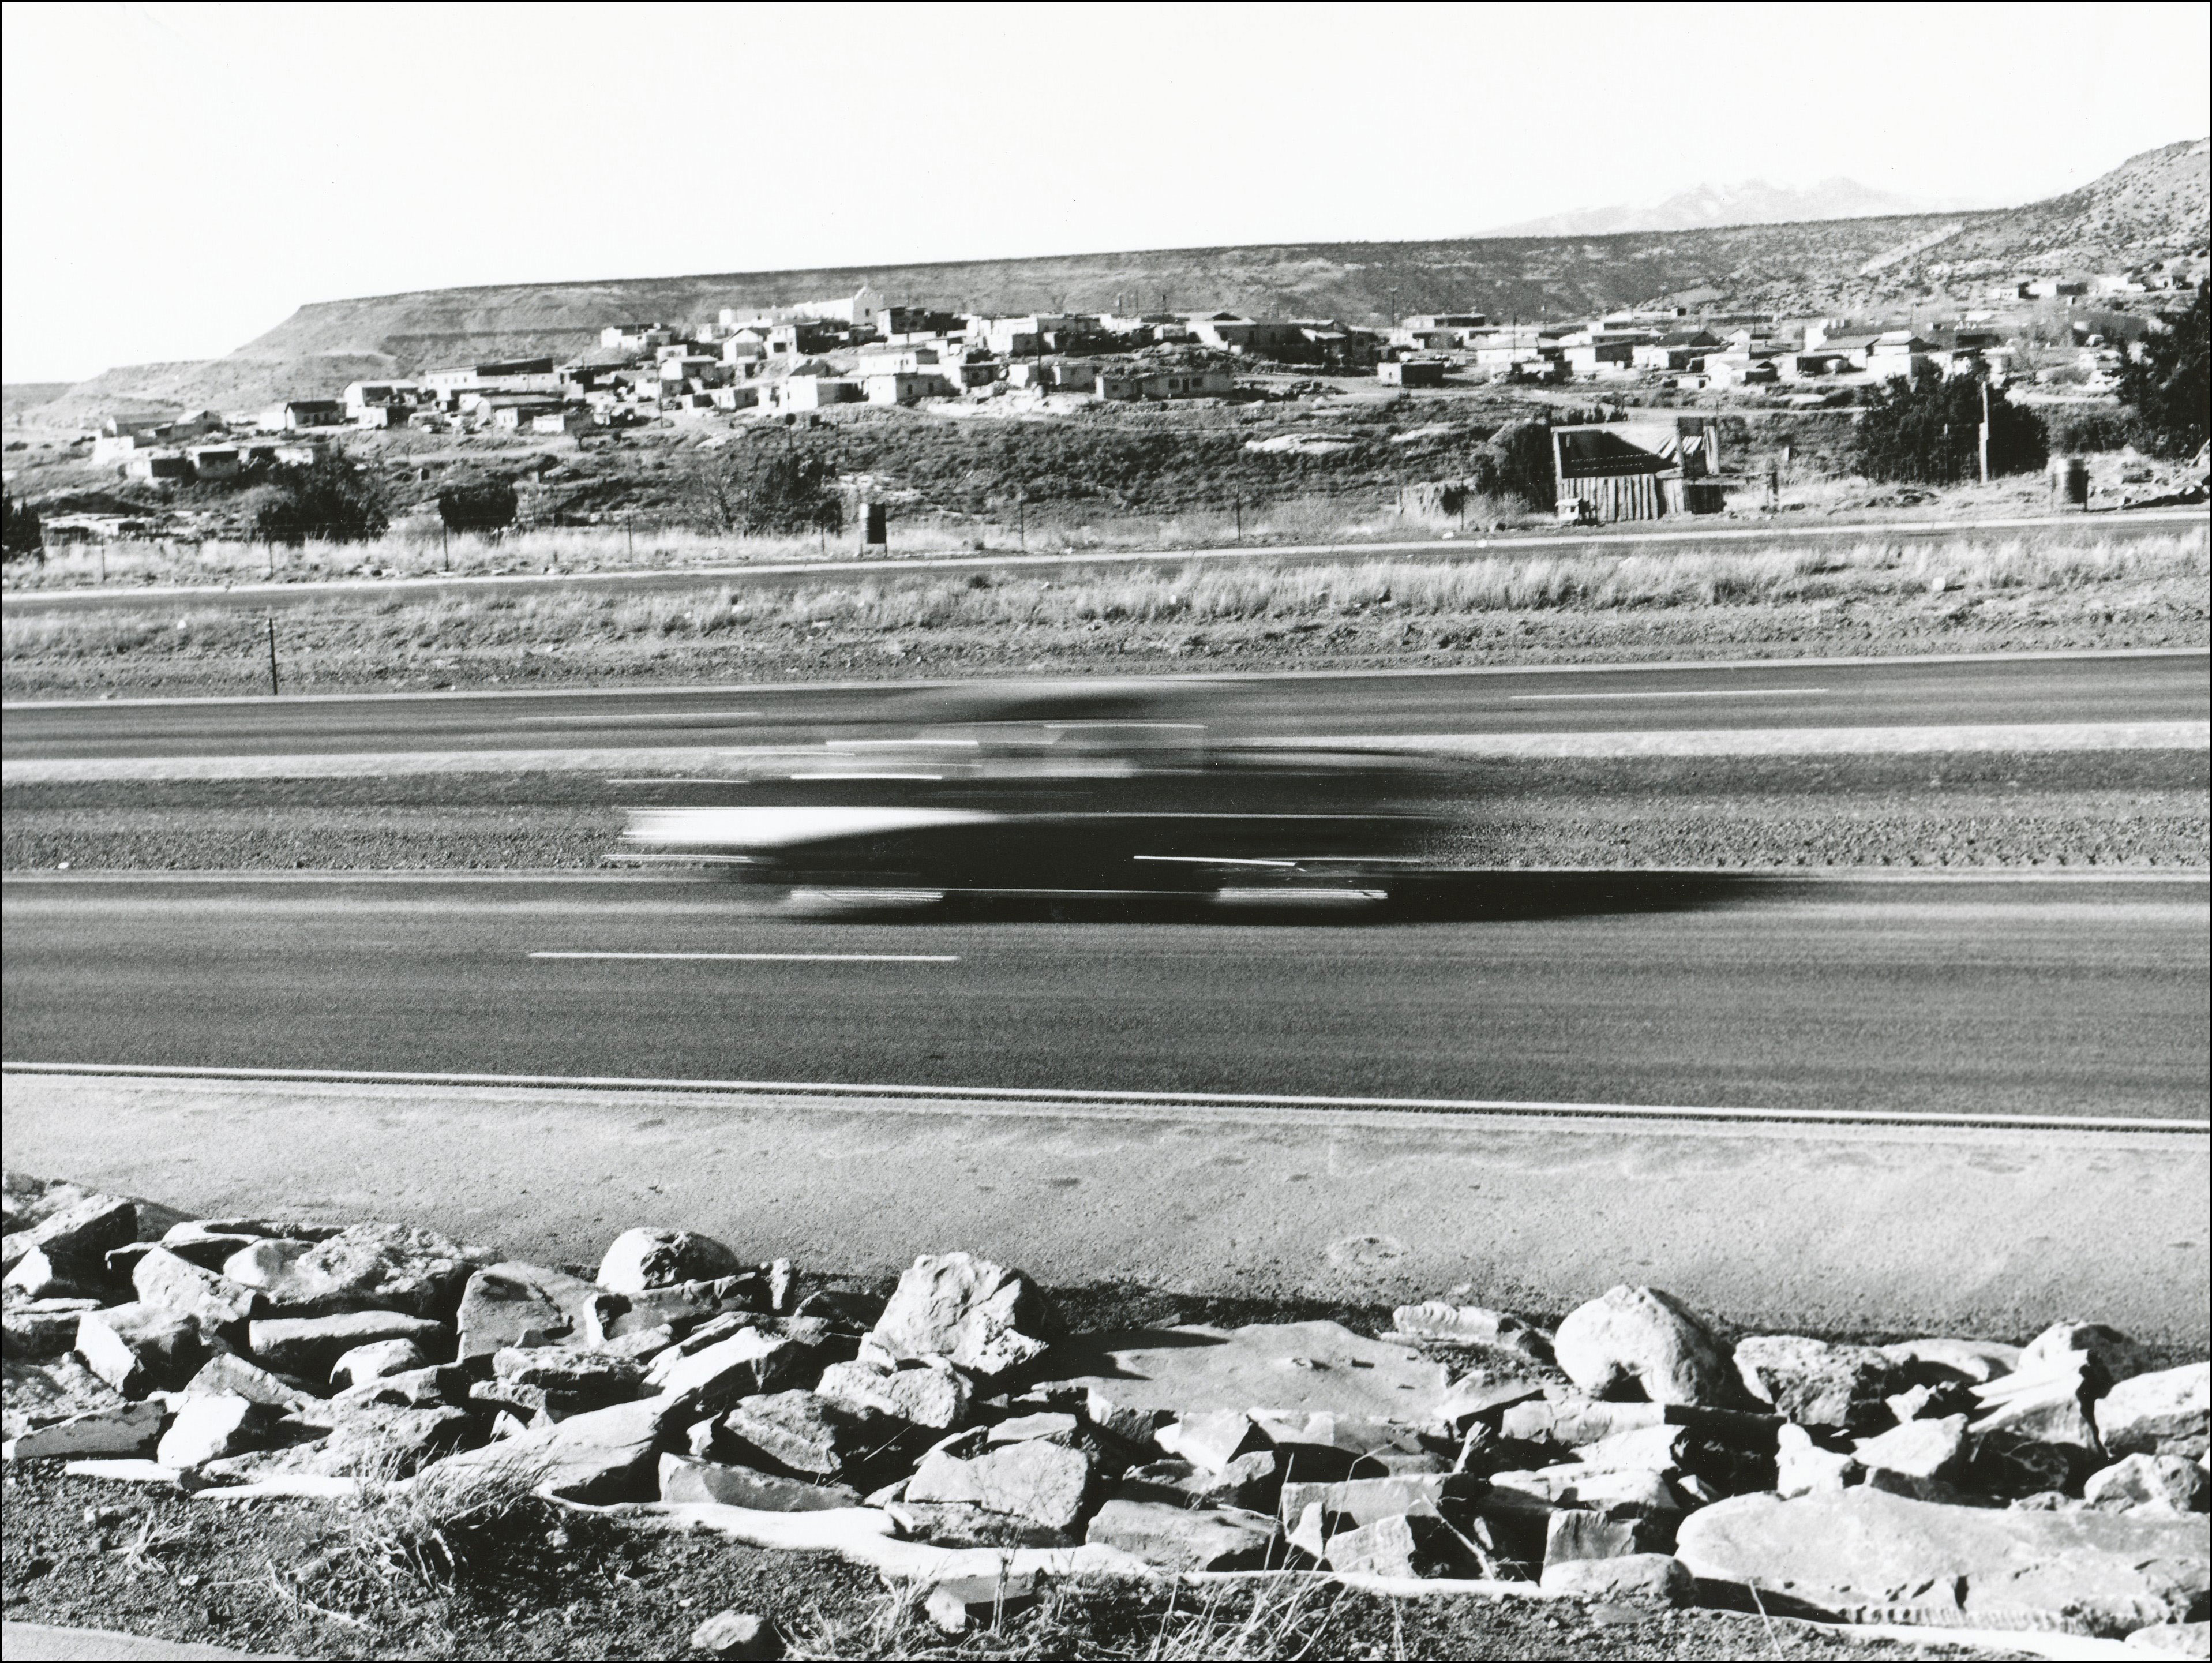 Photo of blurred car on interstate highway with a town on the otherside in the distance, on the very top of the hill is a church, a plateau is behind the town